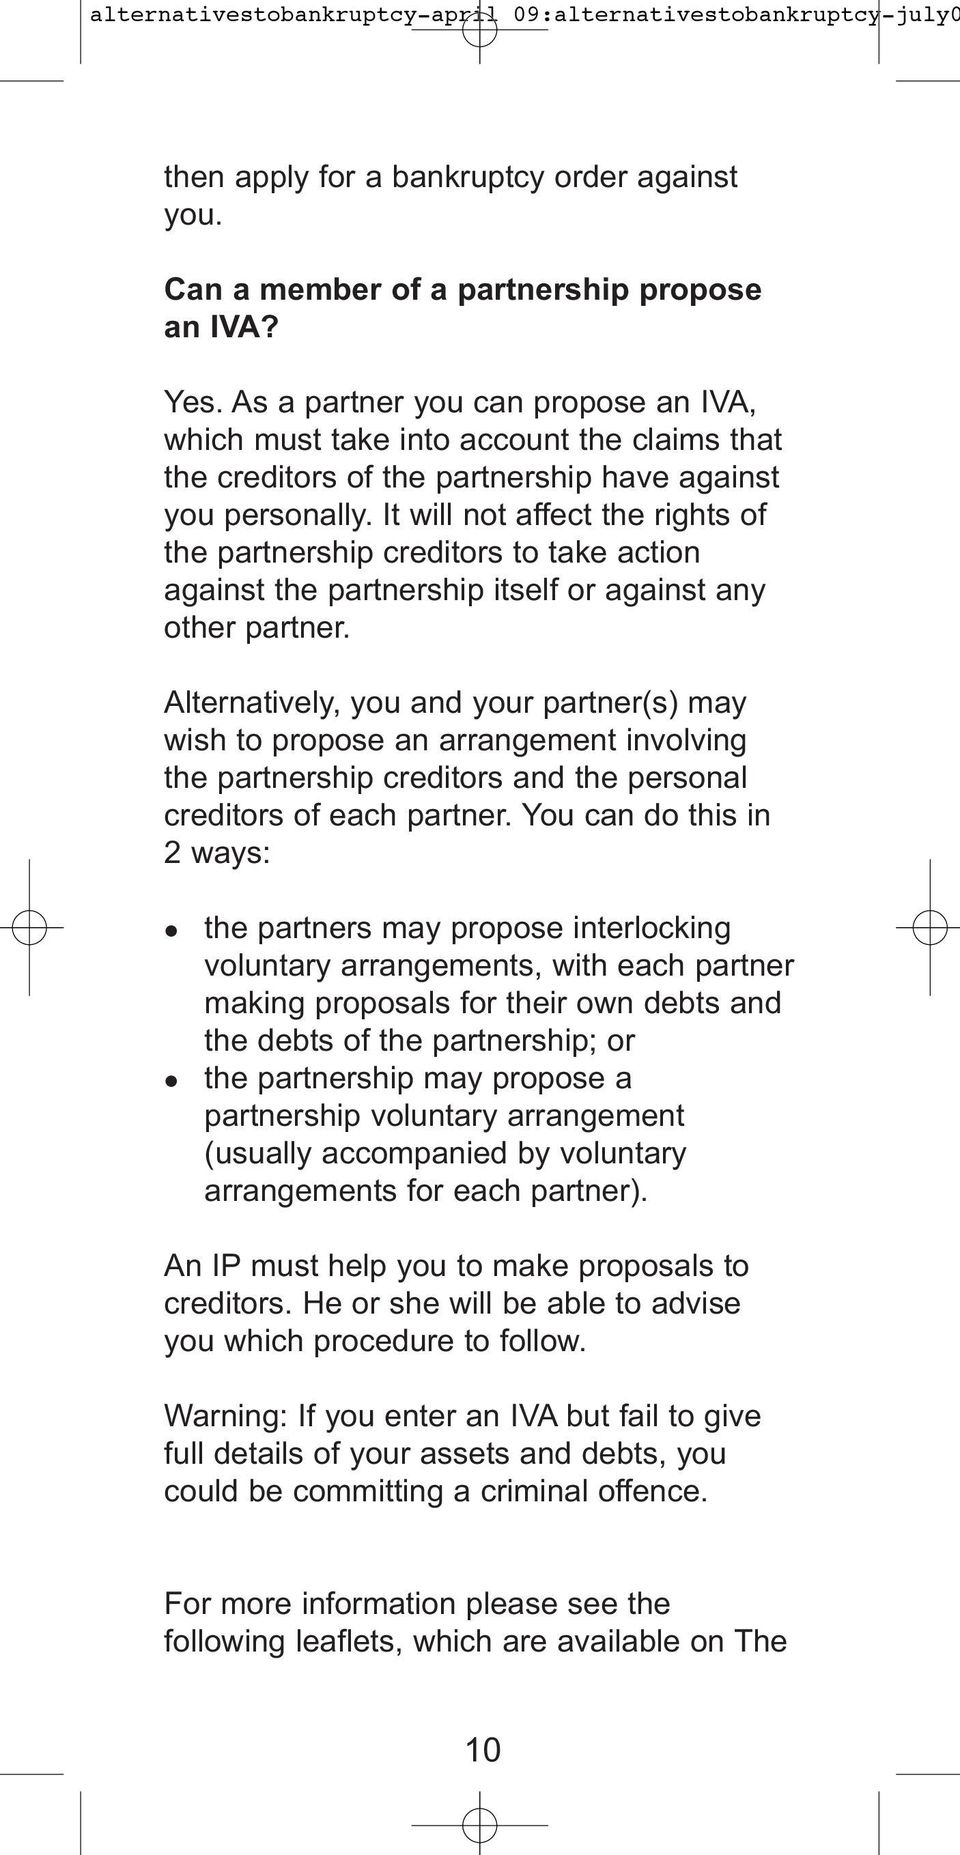 It will not affect the rights of the partnership creditors to take action against the partnership itself or against any other partner.